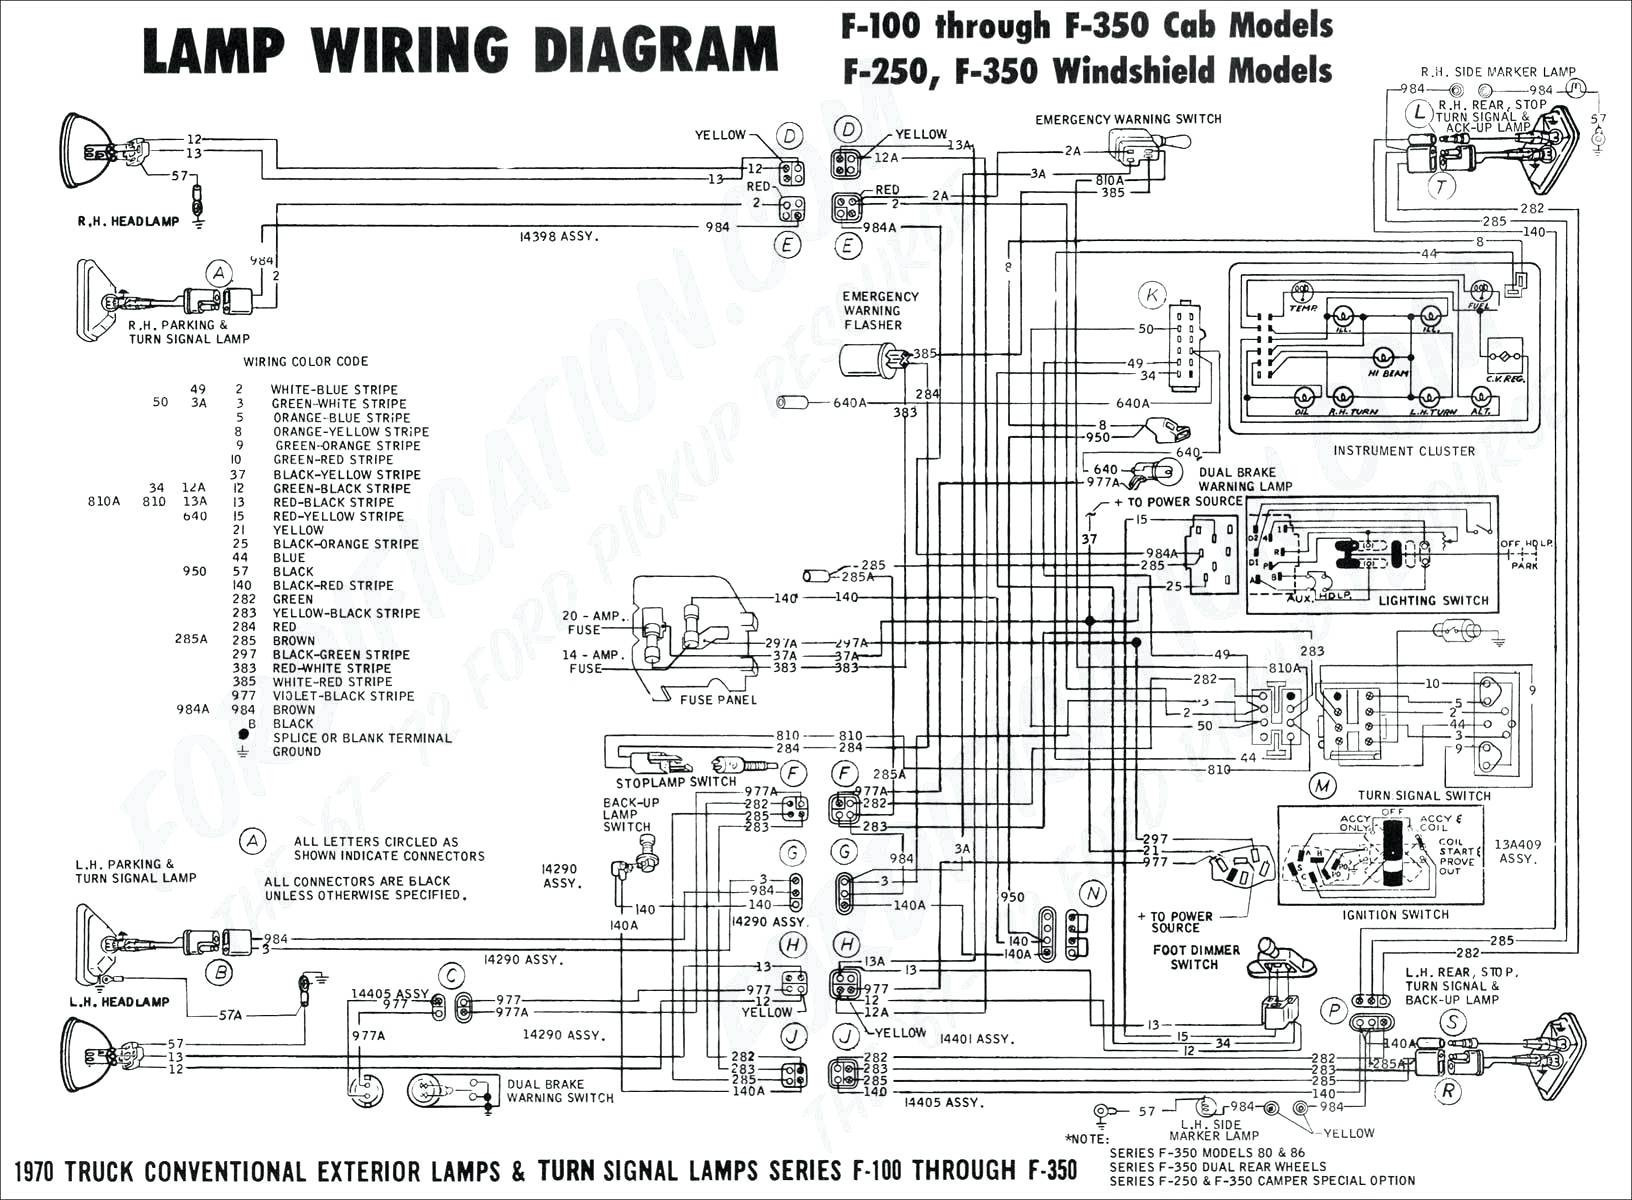 volvo ems2 wiring diagram Collection-bwd relay wiring diagram inspirationa volvo penta wiring harnesses volvo penta brand engine wire 8-b